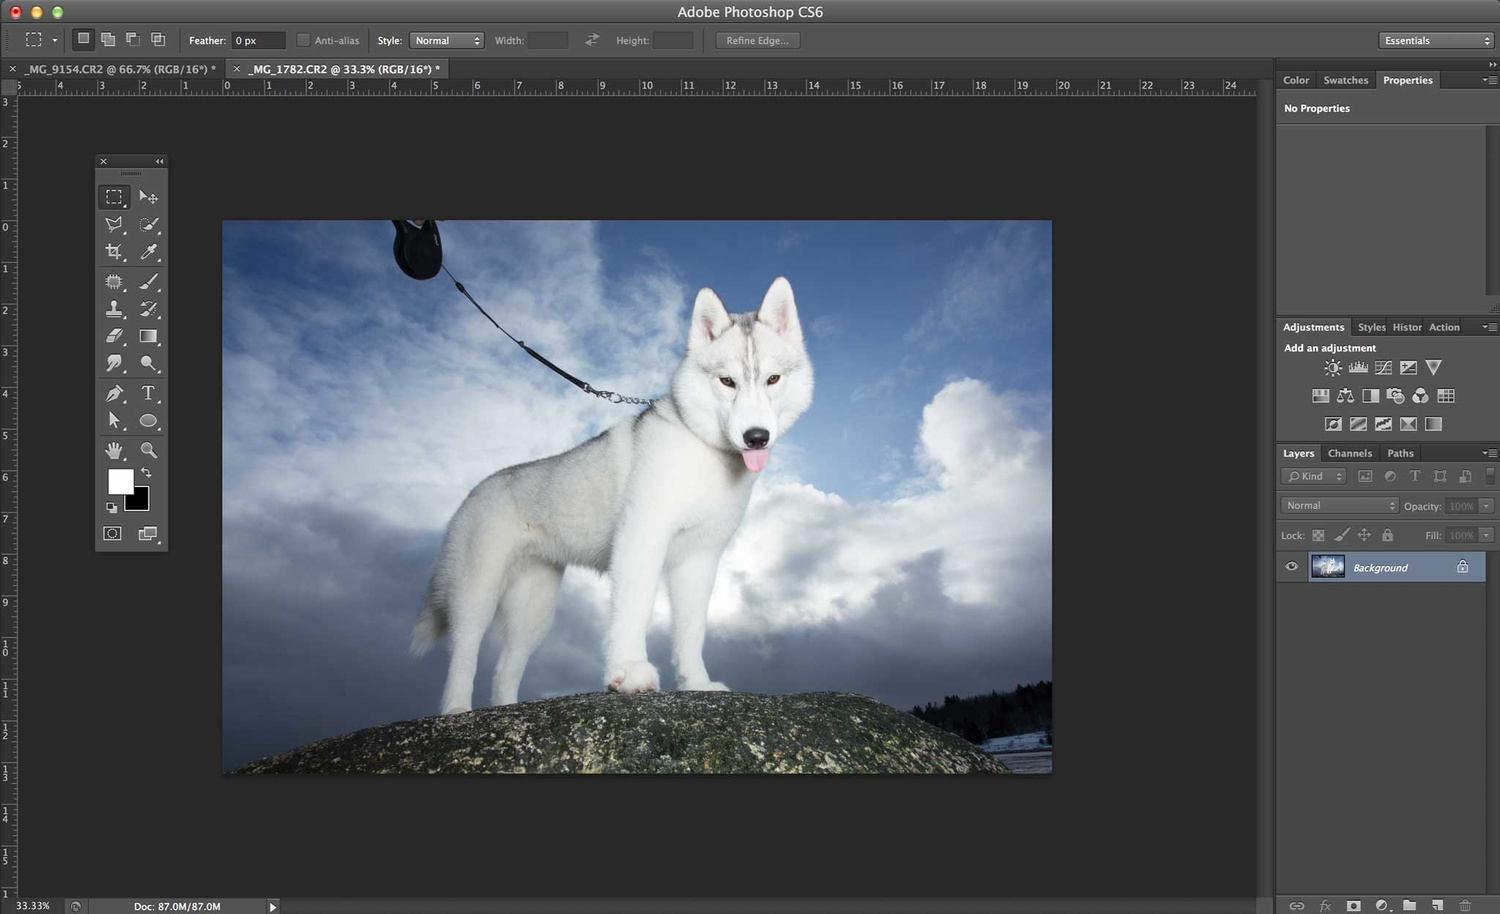 remove dog leashes in Photoshop - Step 1